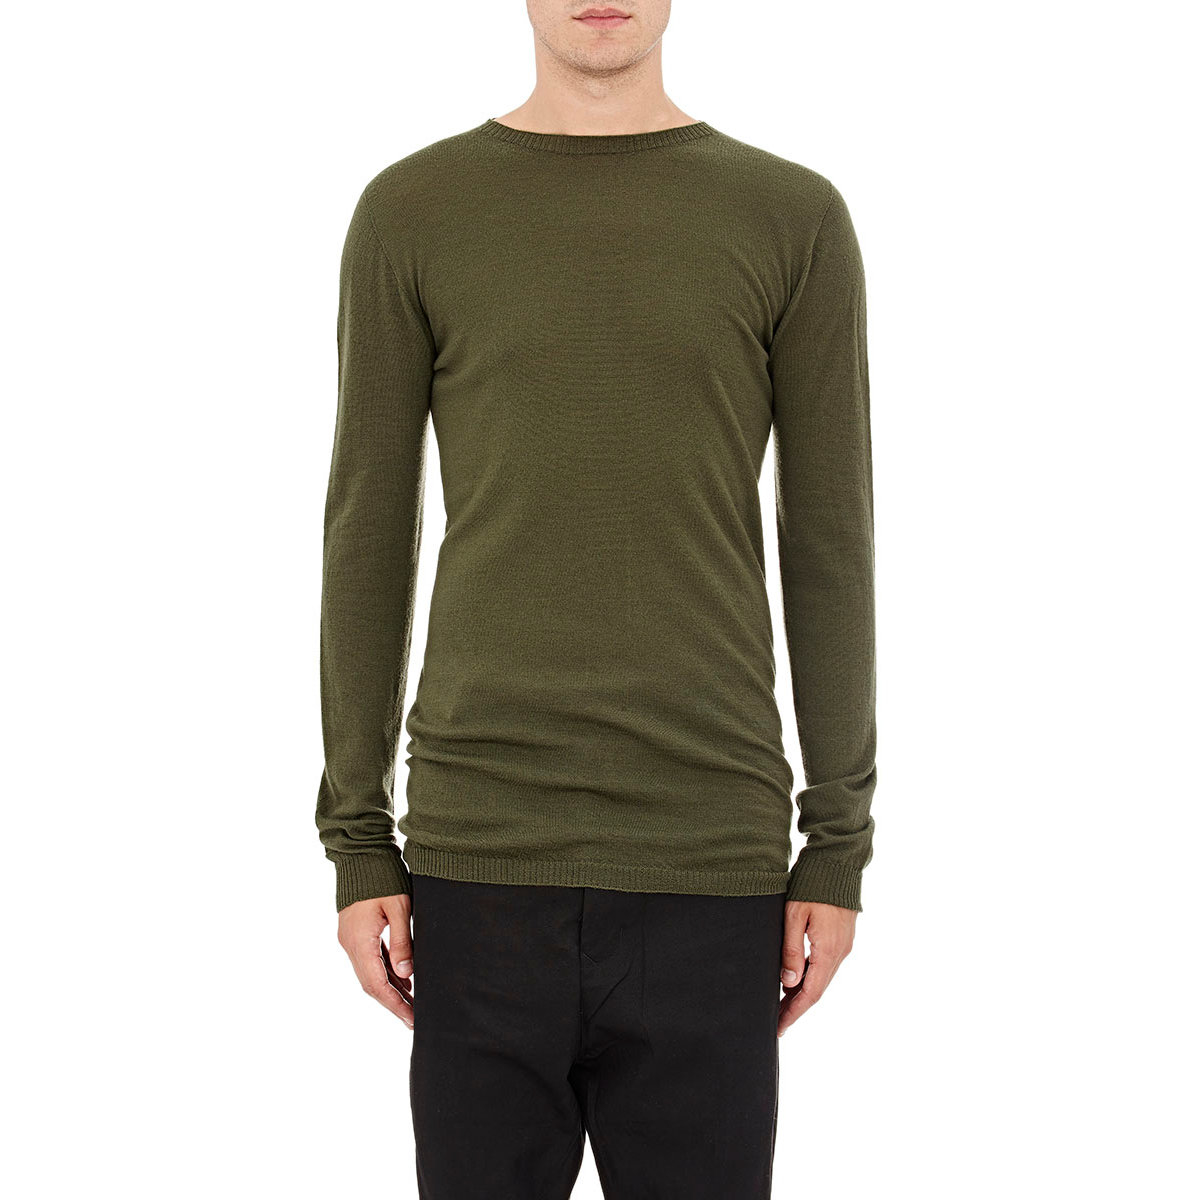 cashmere crew neck jumper - Green Rick Owens Shop For Online Collections Online Buy Cheap Cost GW76yt19e9